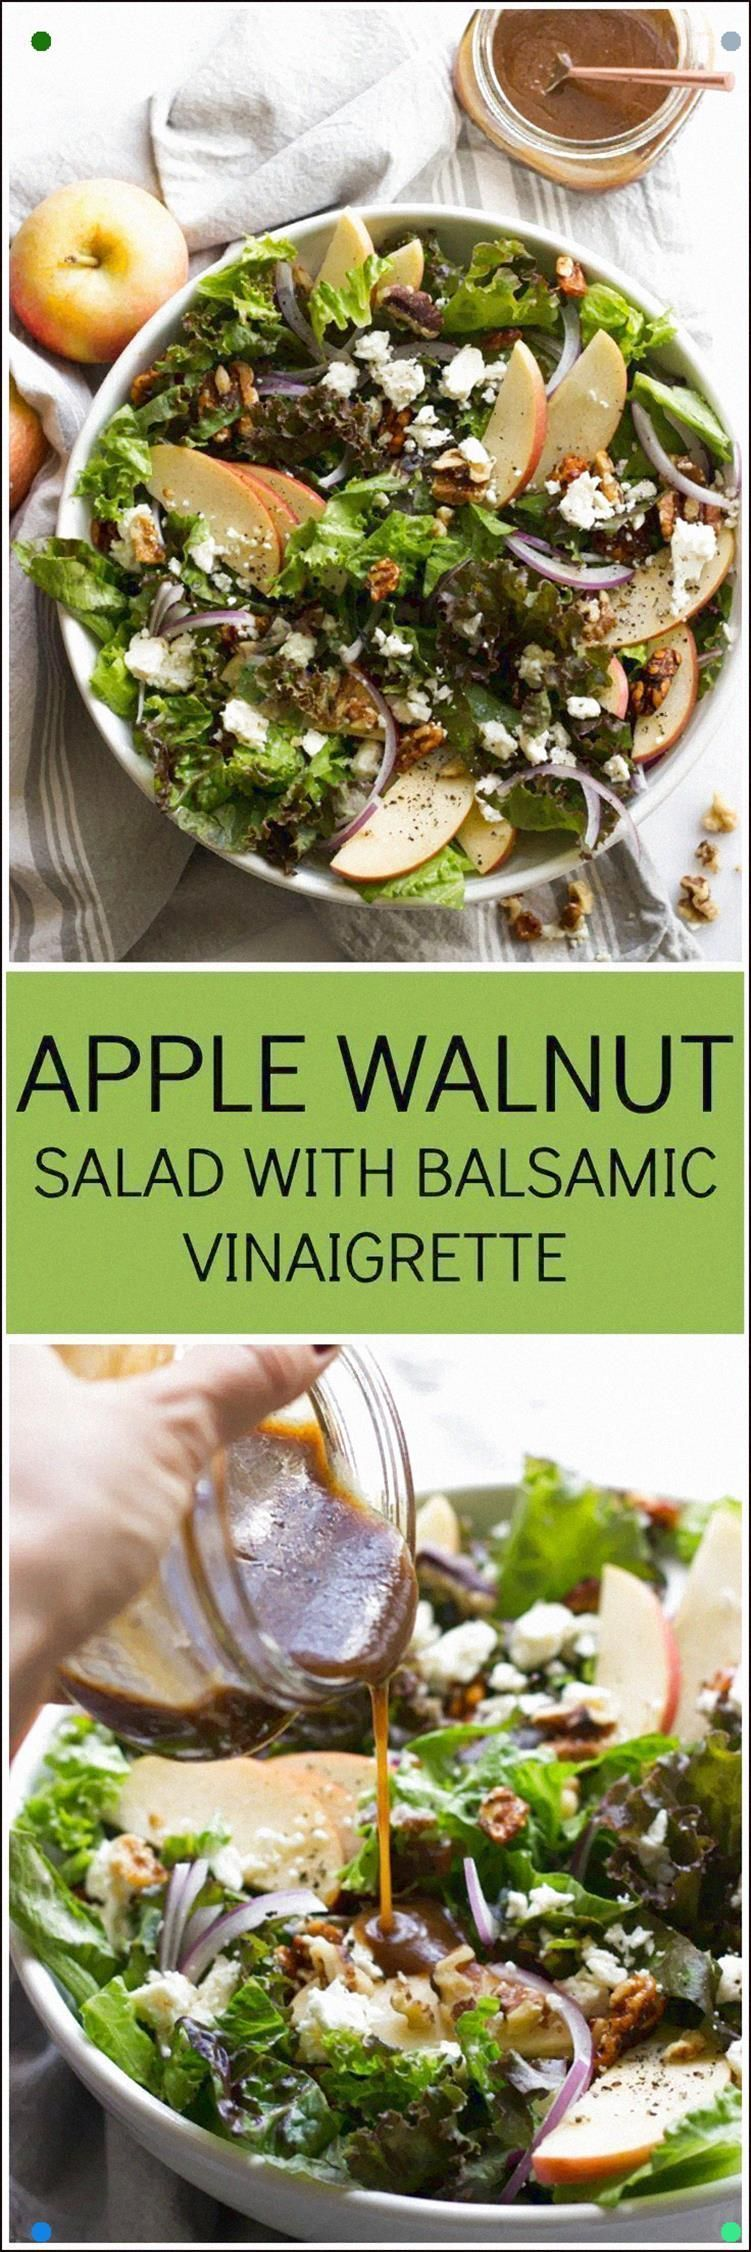 Apple Walnut Salad With Balsamic Vinaigrette - Delicious Autumn Salad With Pantry Ingredients Littlebroken #saladeautomne Apple Walnut Salad With Balsamic Vinaigrette - Delicious Autumn Salad With Pantry Ingredients Littlebroken #saladeautomne Apple Walnut Salad With Balsamic Vinaigrette - Delicious Autumn Salad With Pantry Ingredients Littlebroken #saladeautomne Apple Walnut Salad With Balsamic Vinaigrette - Delicious Autumn Salad With Pantry Ingredients Littlebroken #saladeautomne